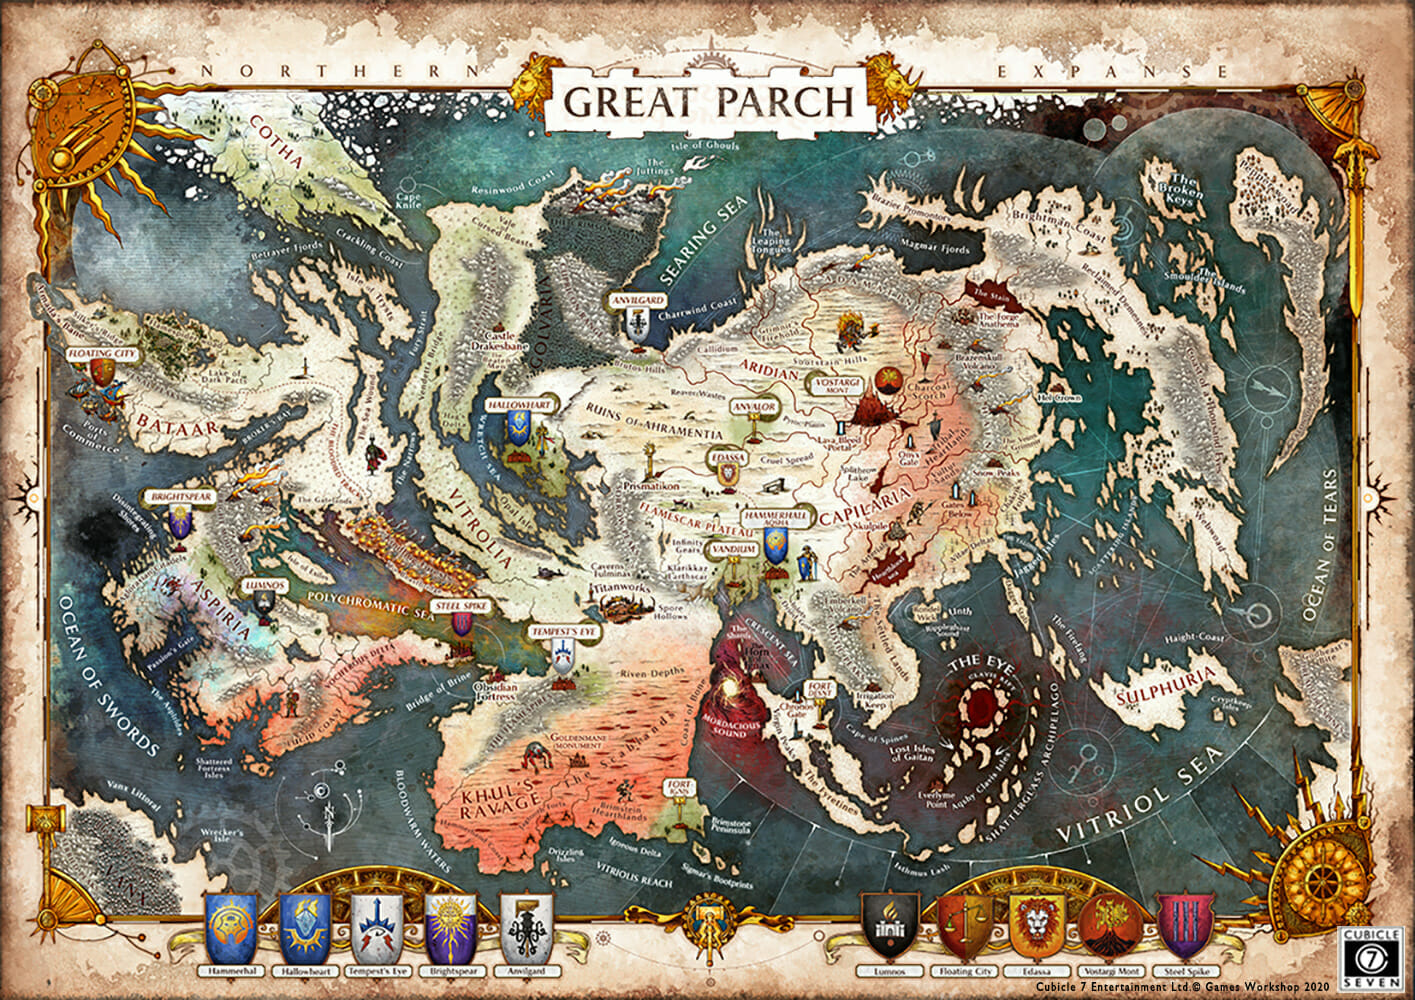 The Great Parch